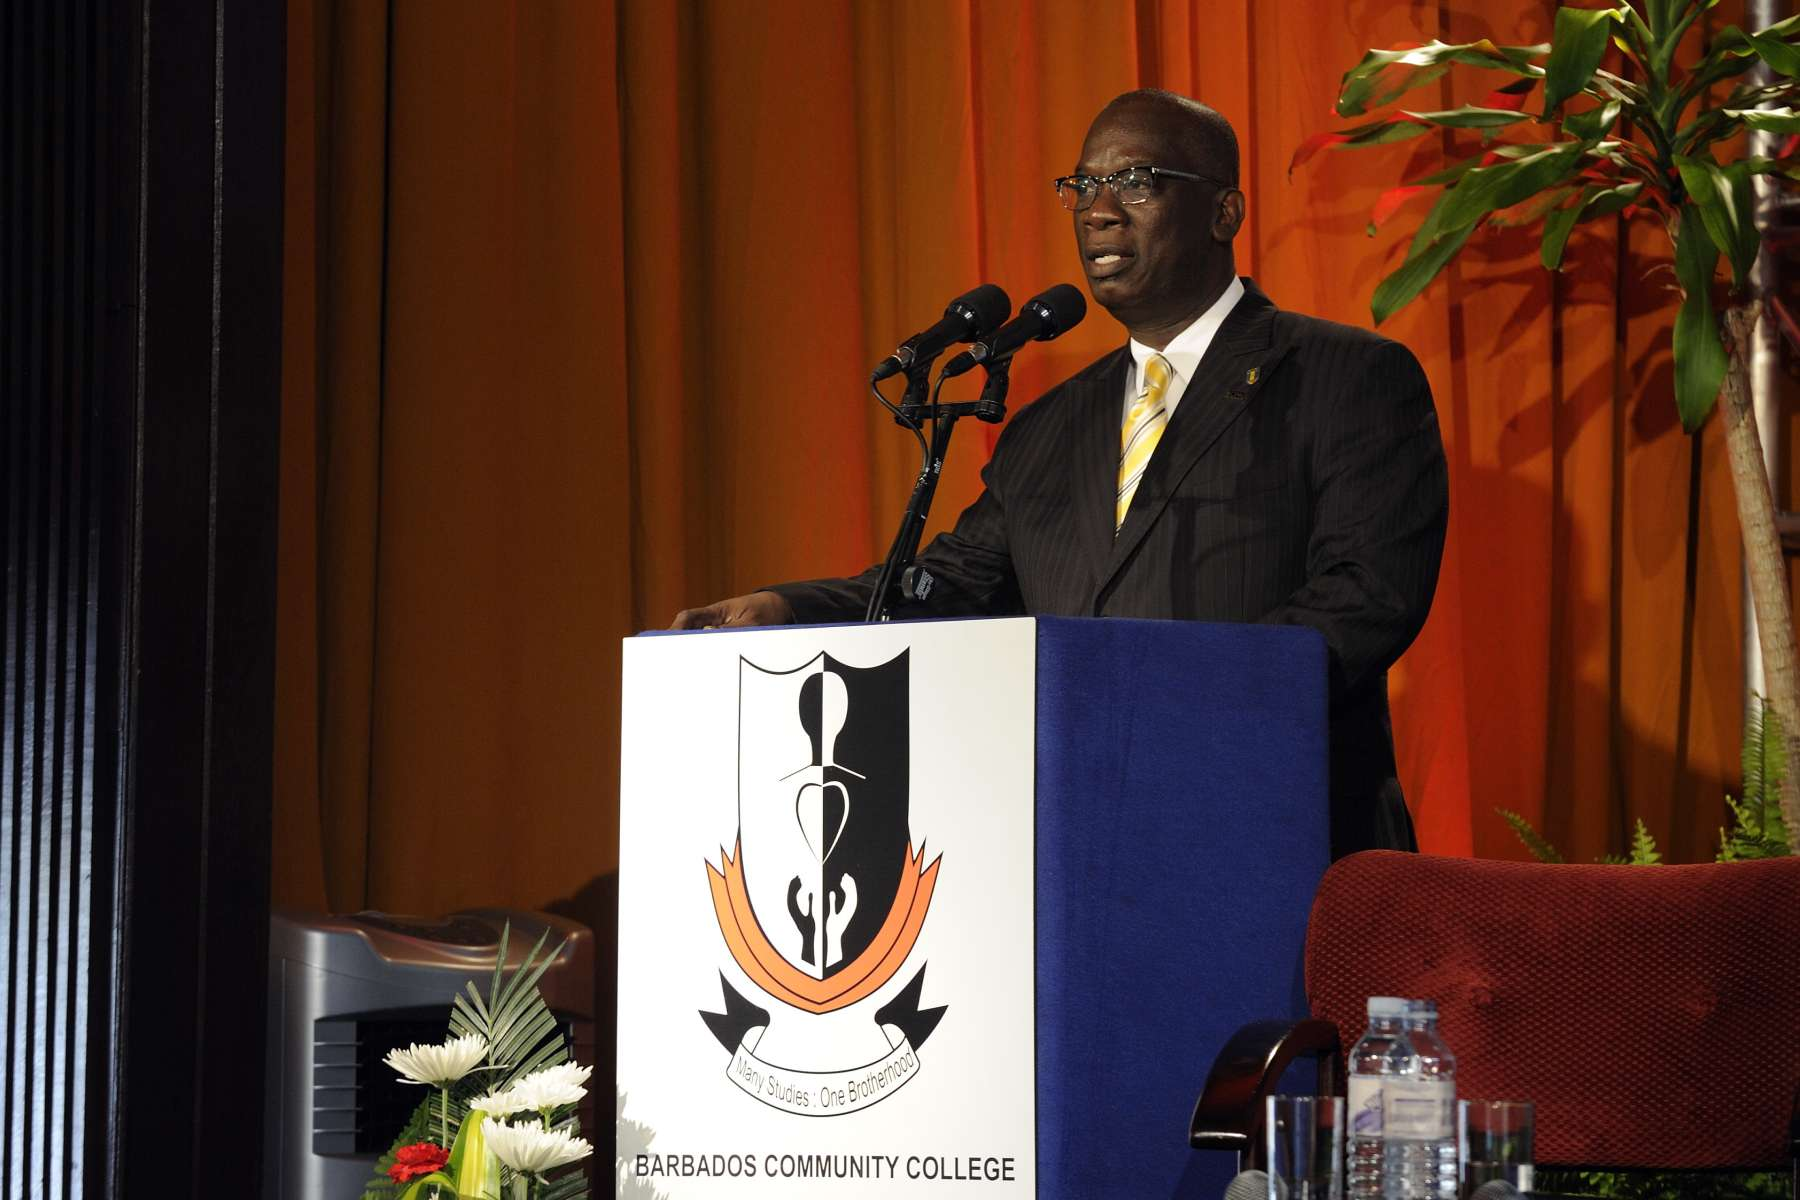 The Minister of Education of Barbados, Ronald Jones, delivered remarks.